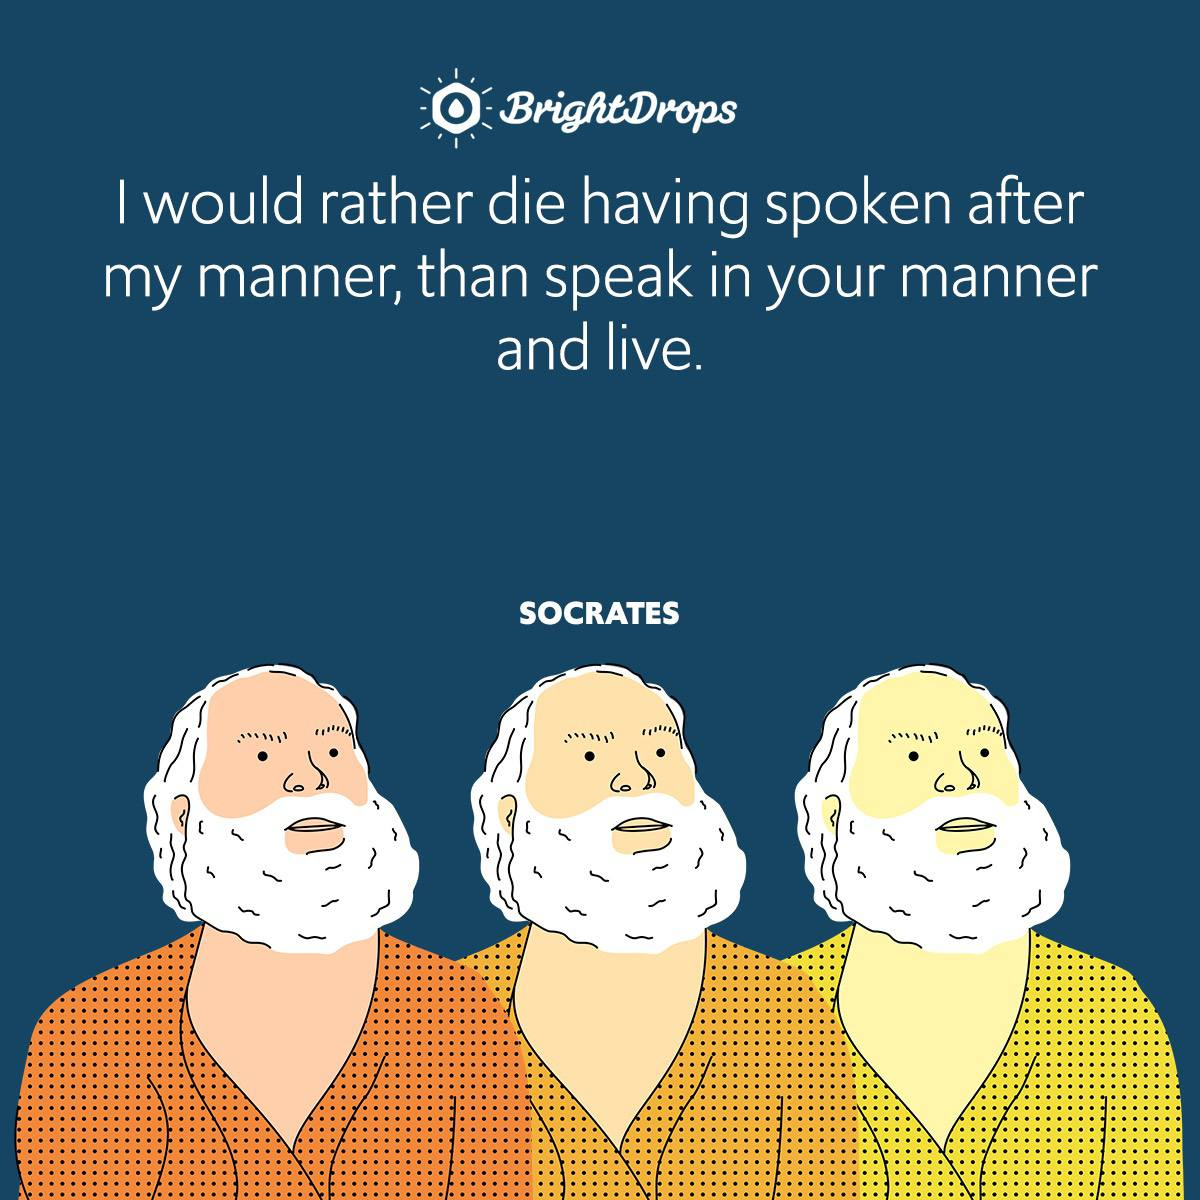 I would rather die having spoken after my manner, than speak in your manner and live.